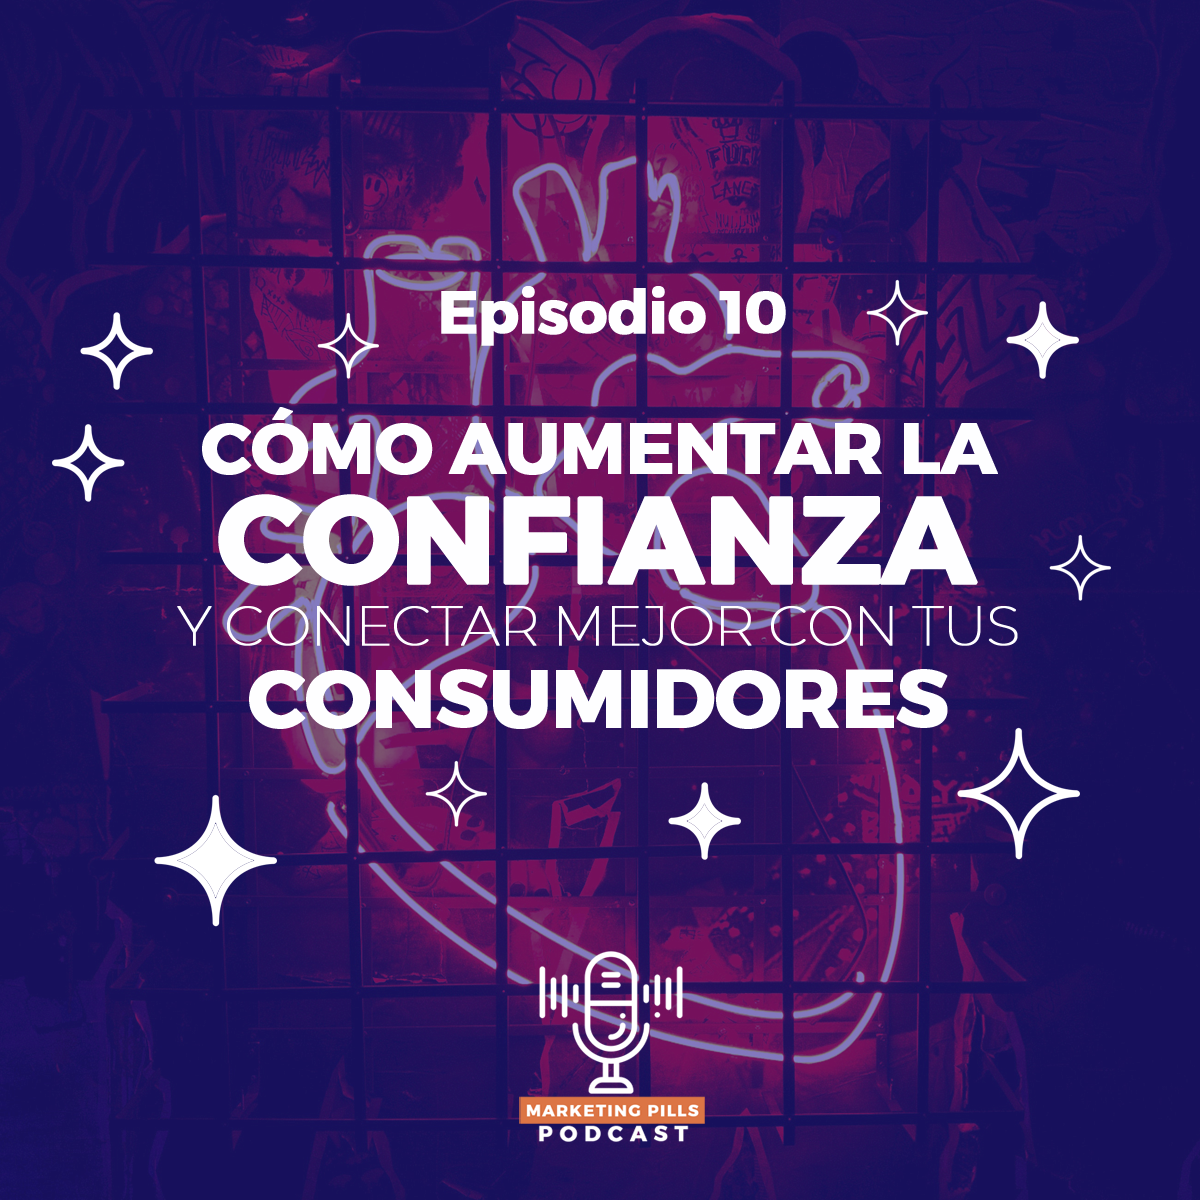 https://marianasalas.com/wp-content/uploads/2019/05/EPISODIO10.png